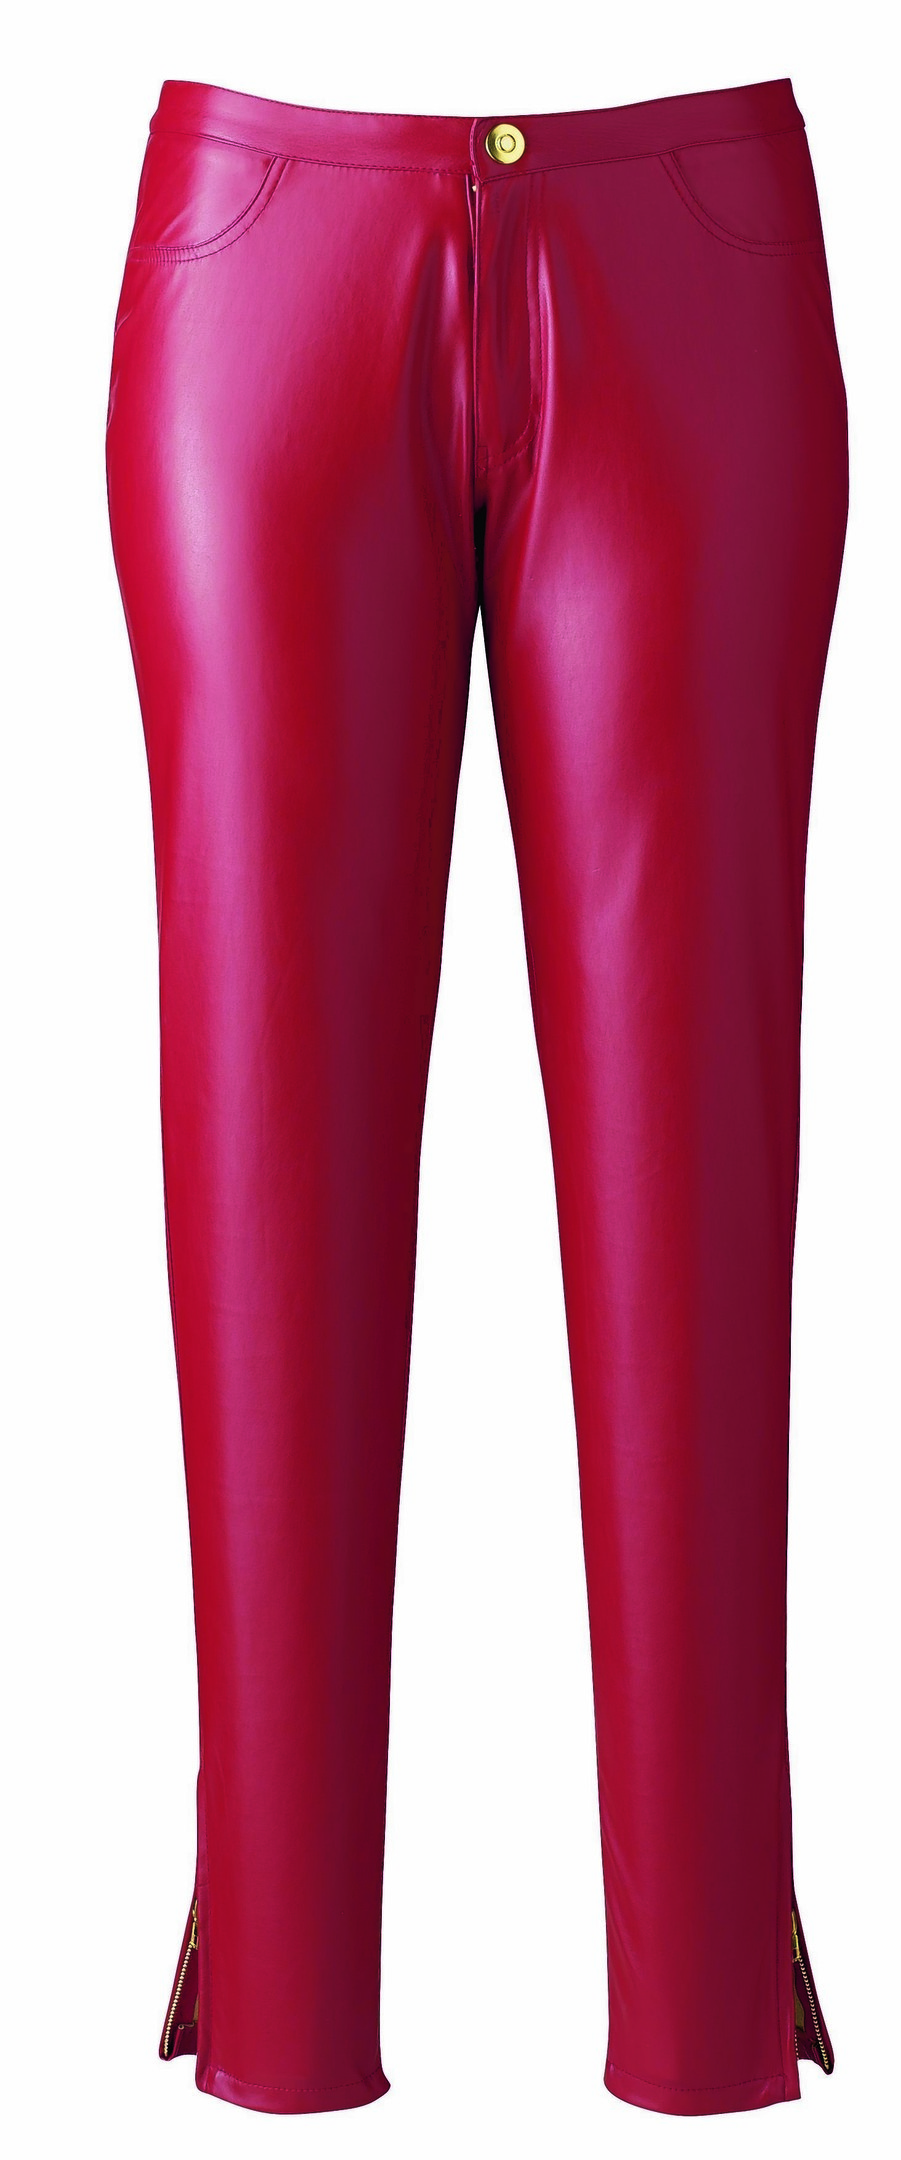 Kelly Brook for Simply Be red PU zip-hem trousers, £50